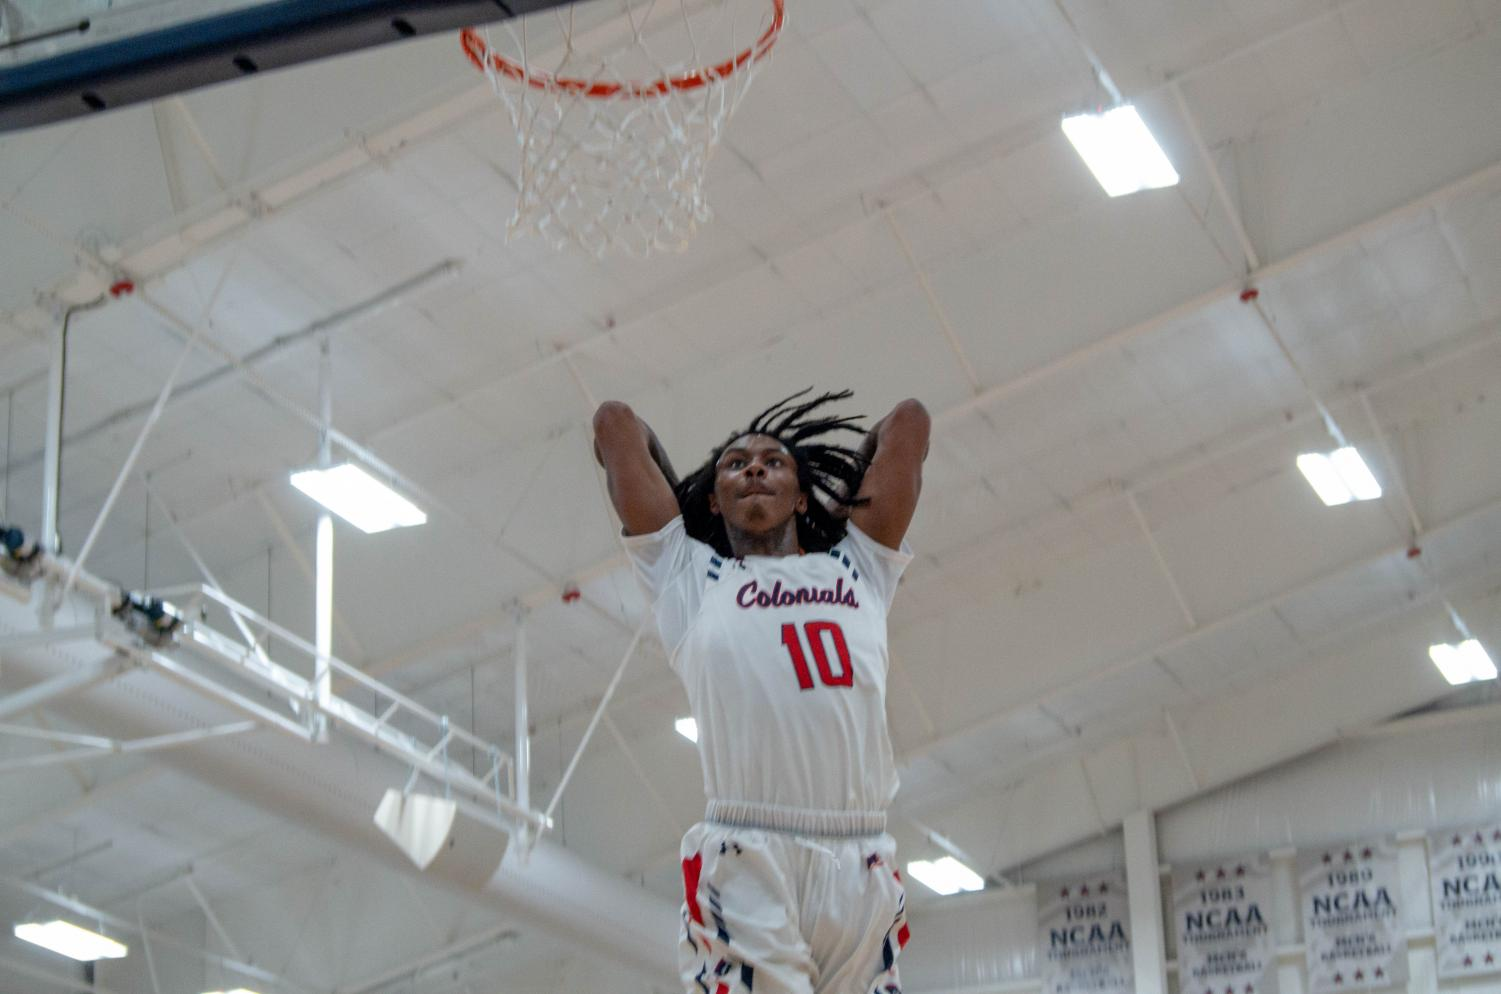 MOON TOWNSHIP -- Koby Thomas dunks against LIU Brooklyn on Febuary 21, 2019 (Mike Evans/RMU Sentry Media). This was the signature moment in the team's win.